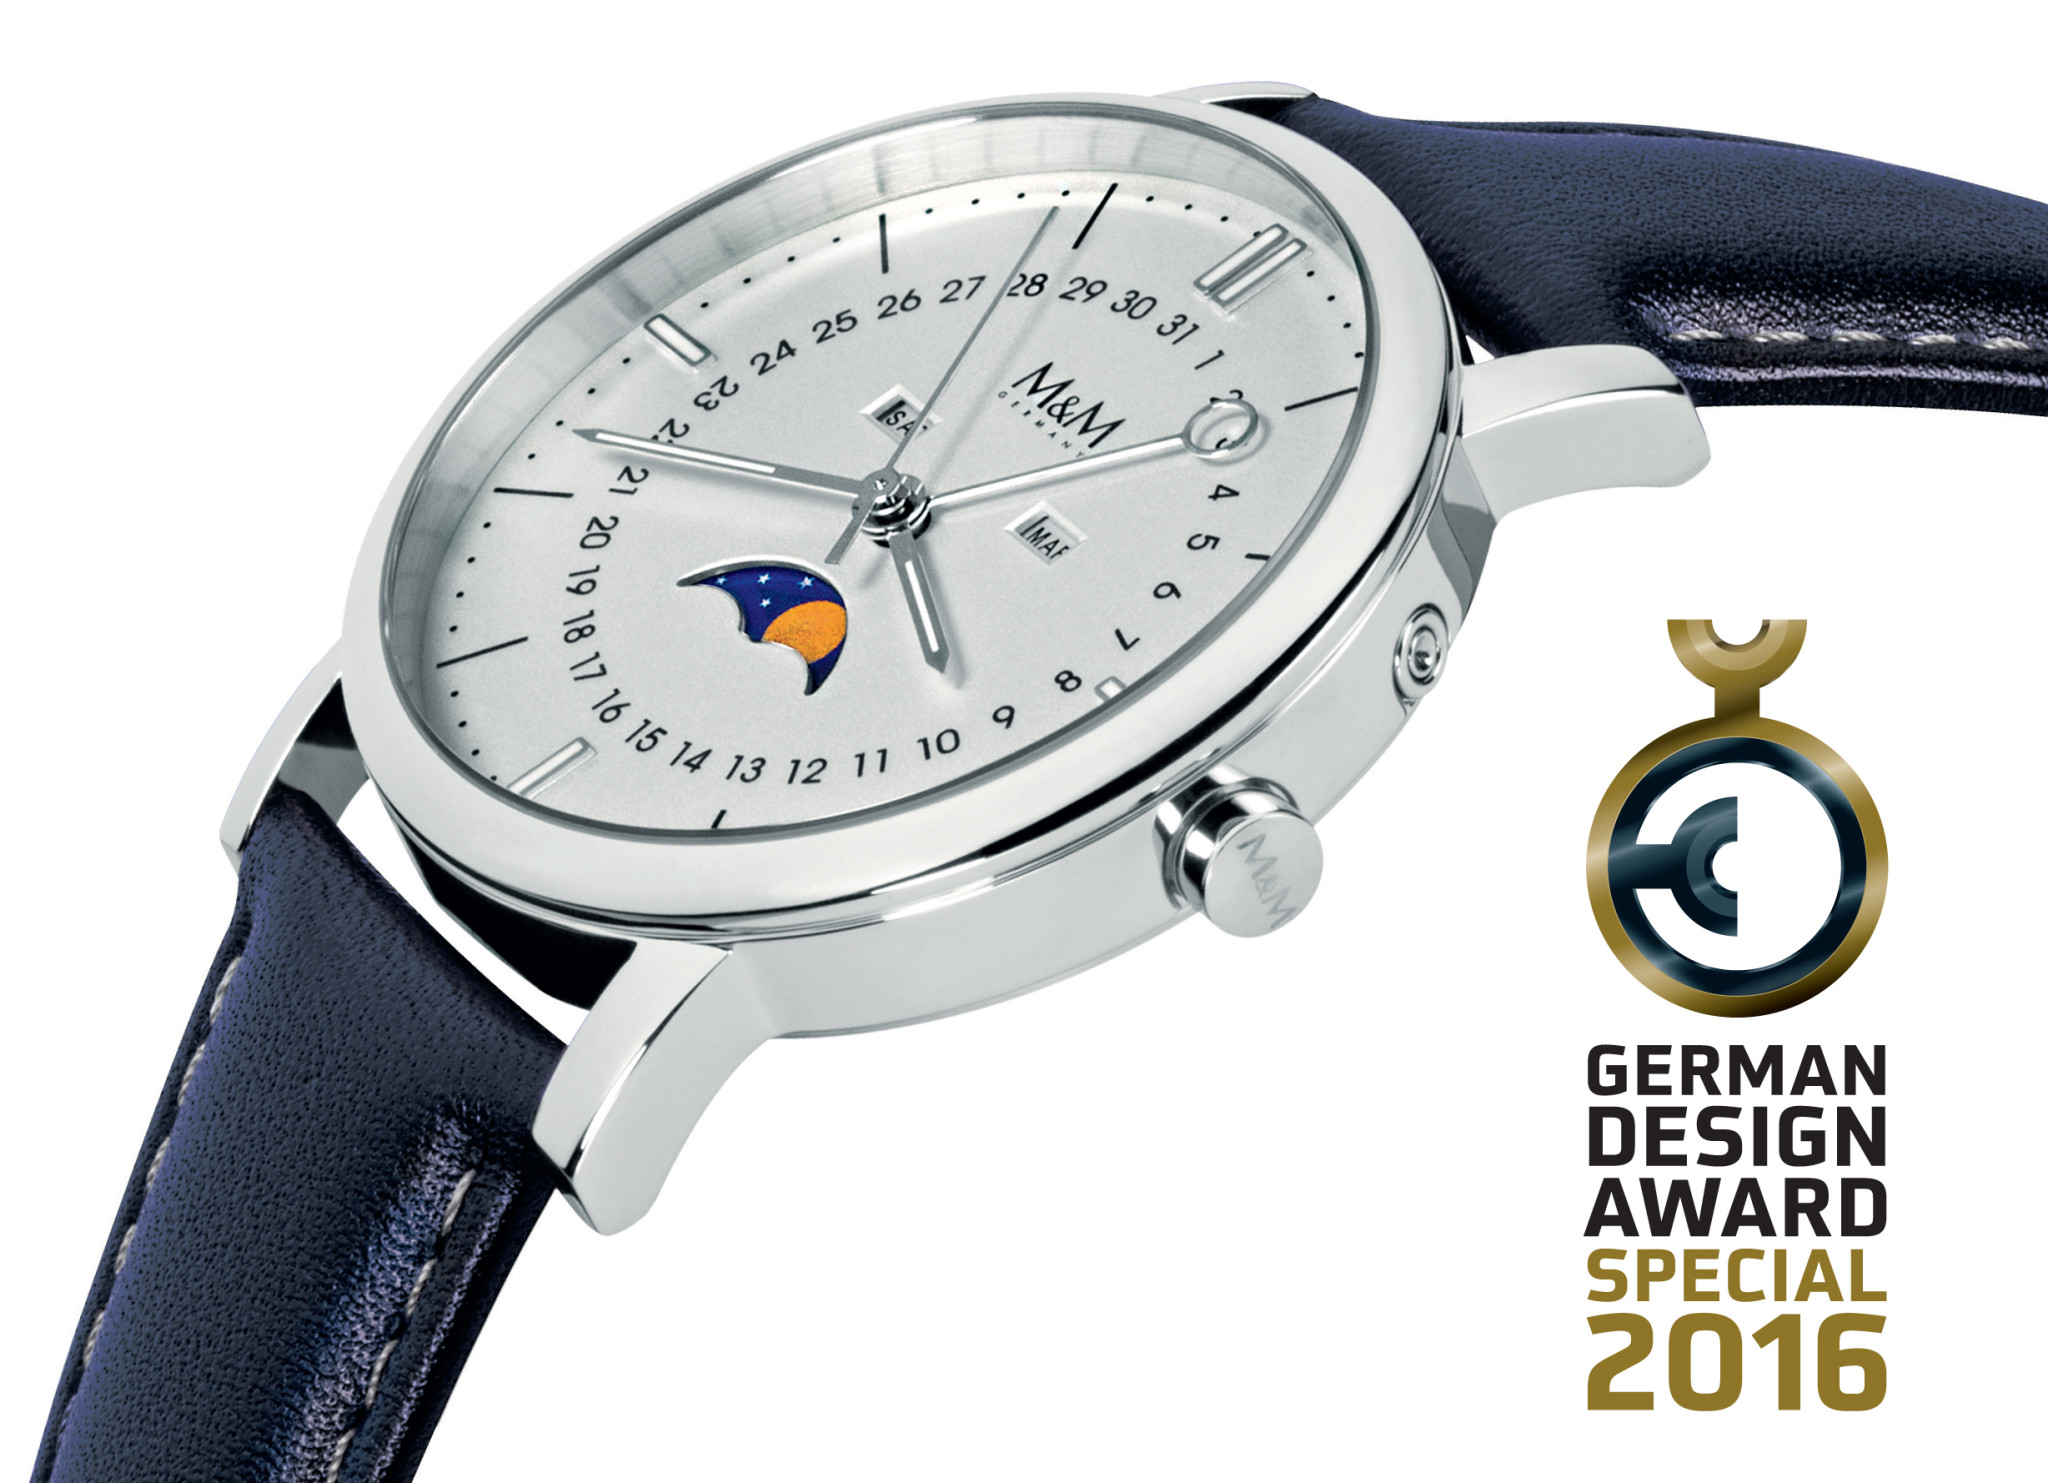 National award for M&M Germany\'s Moonphase design - WatchPro USA